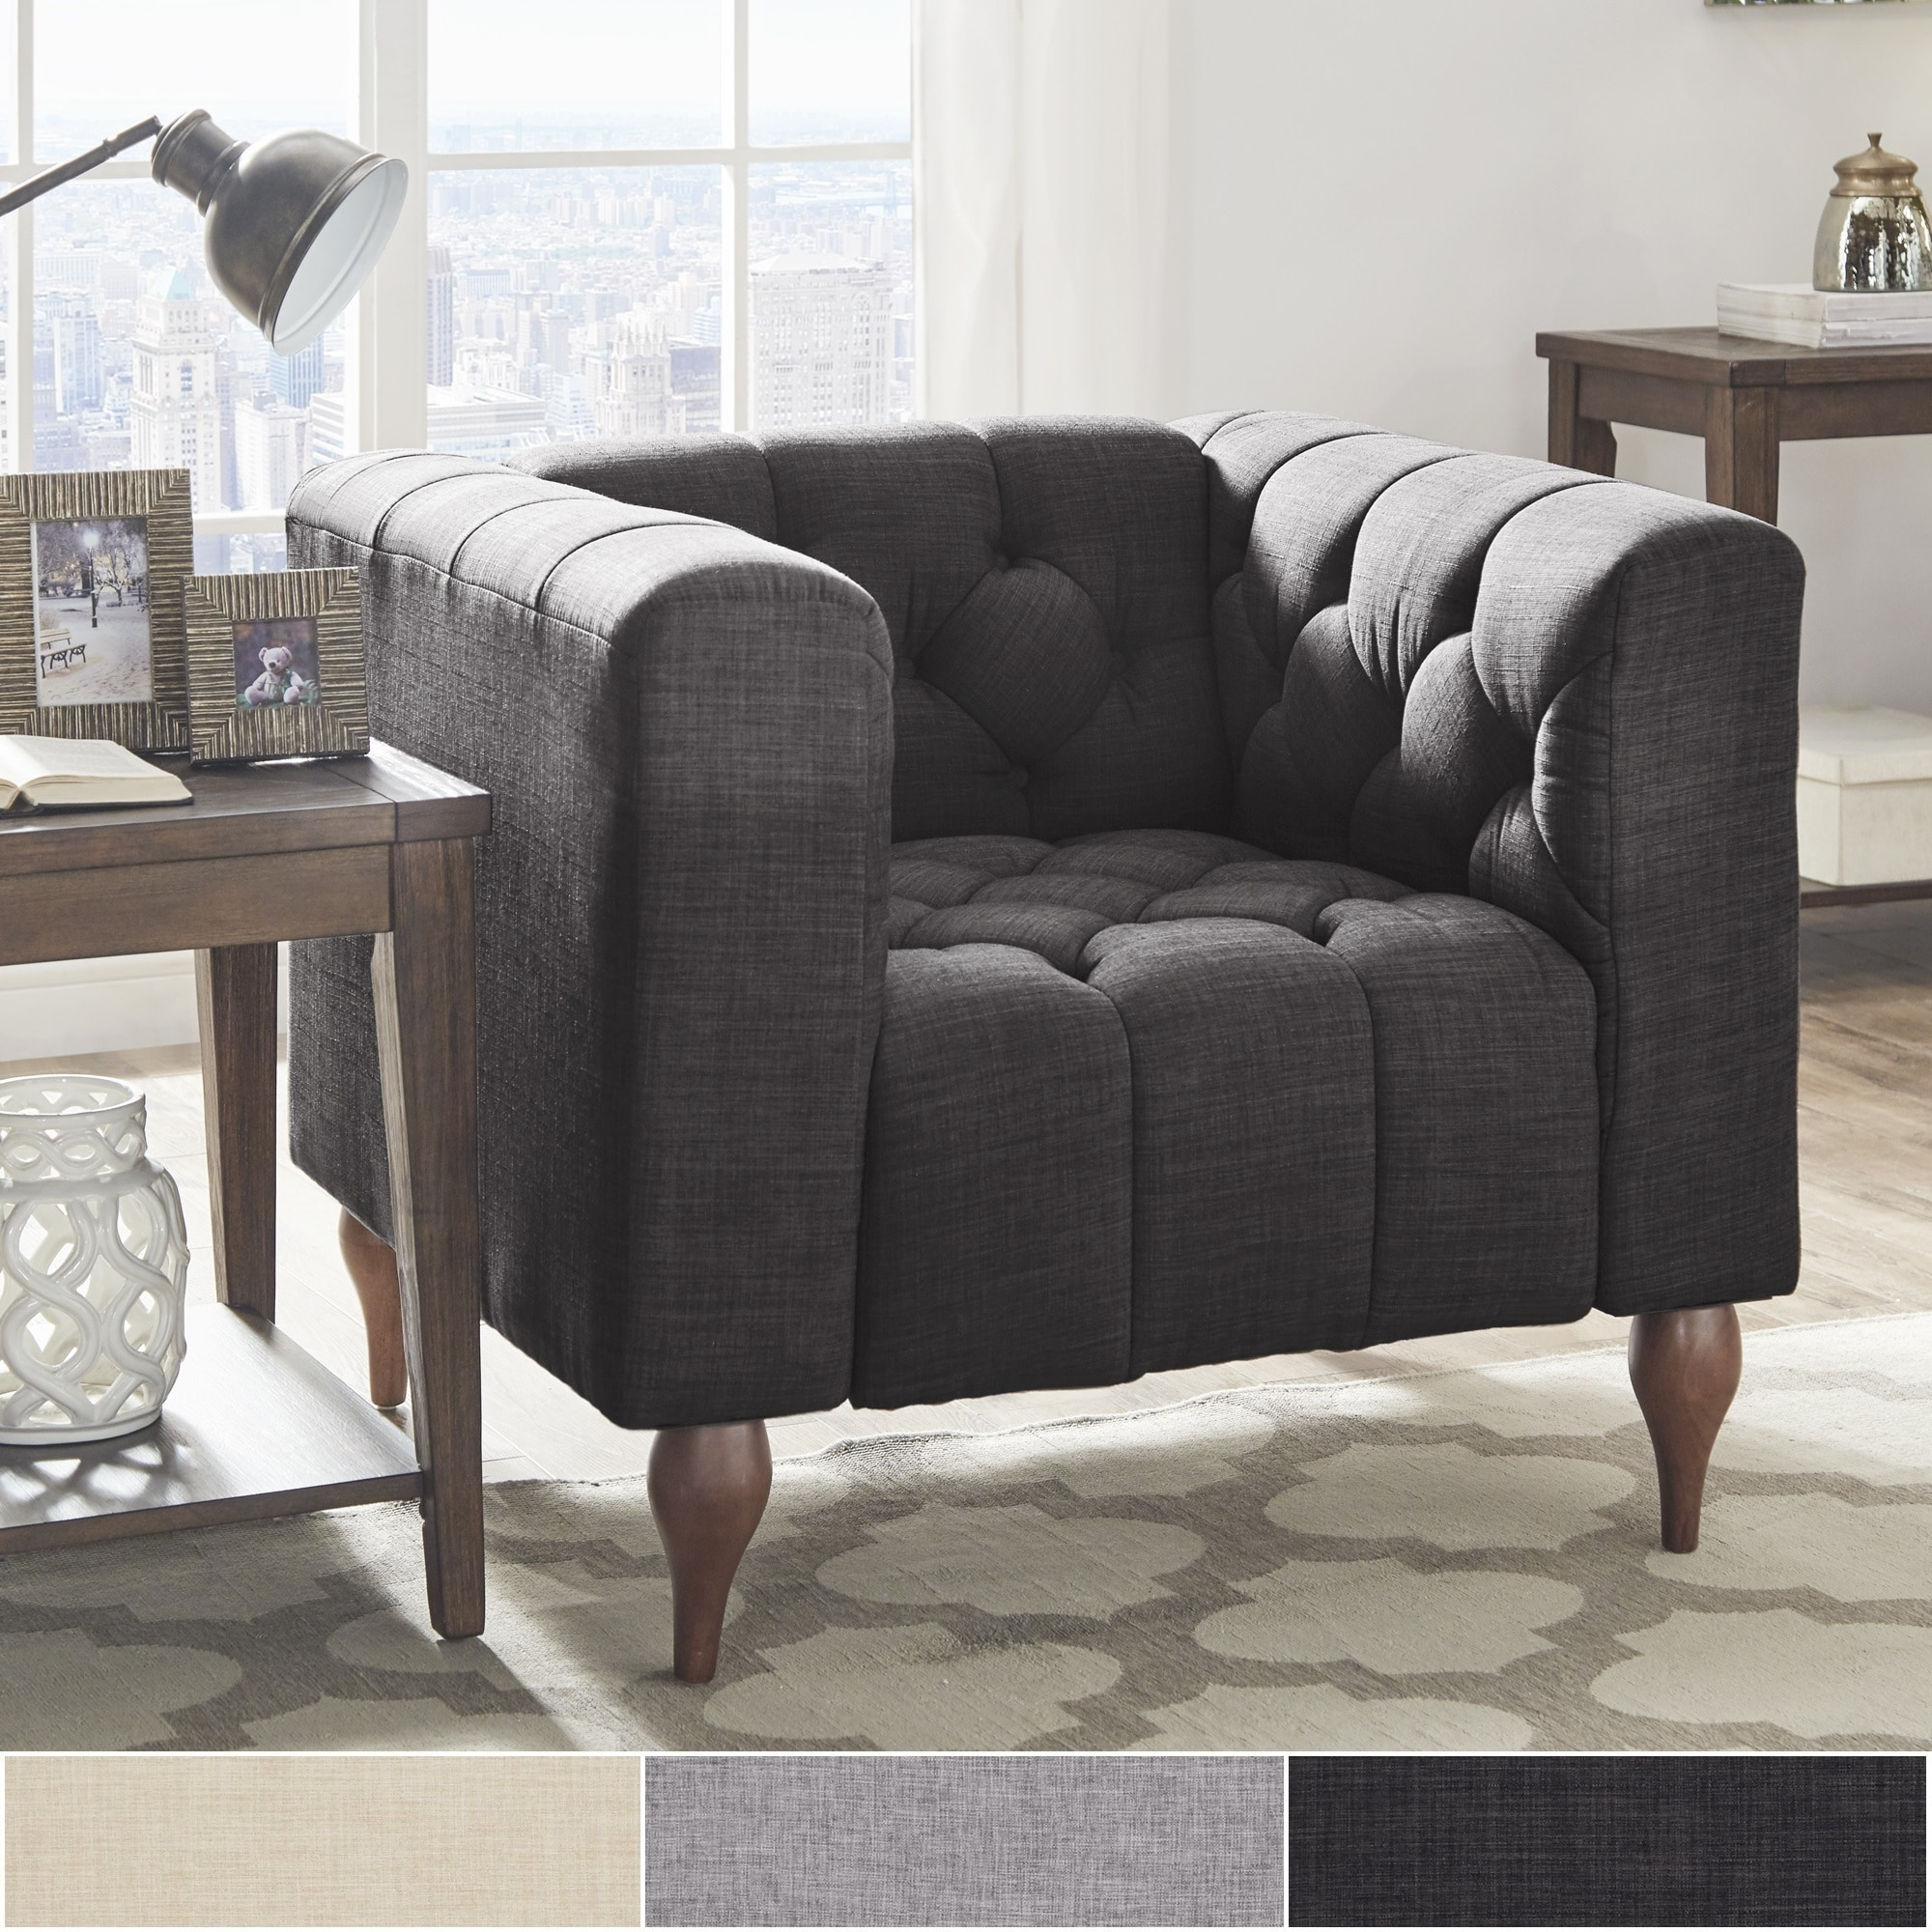 Shop Danise Tufted Linen Upholstered Tuxedo Arm Chair By INSPIRE Q Artisan    On Sale   Free Shipping Today   Overstock.com   22193731